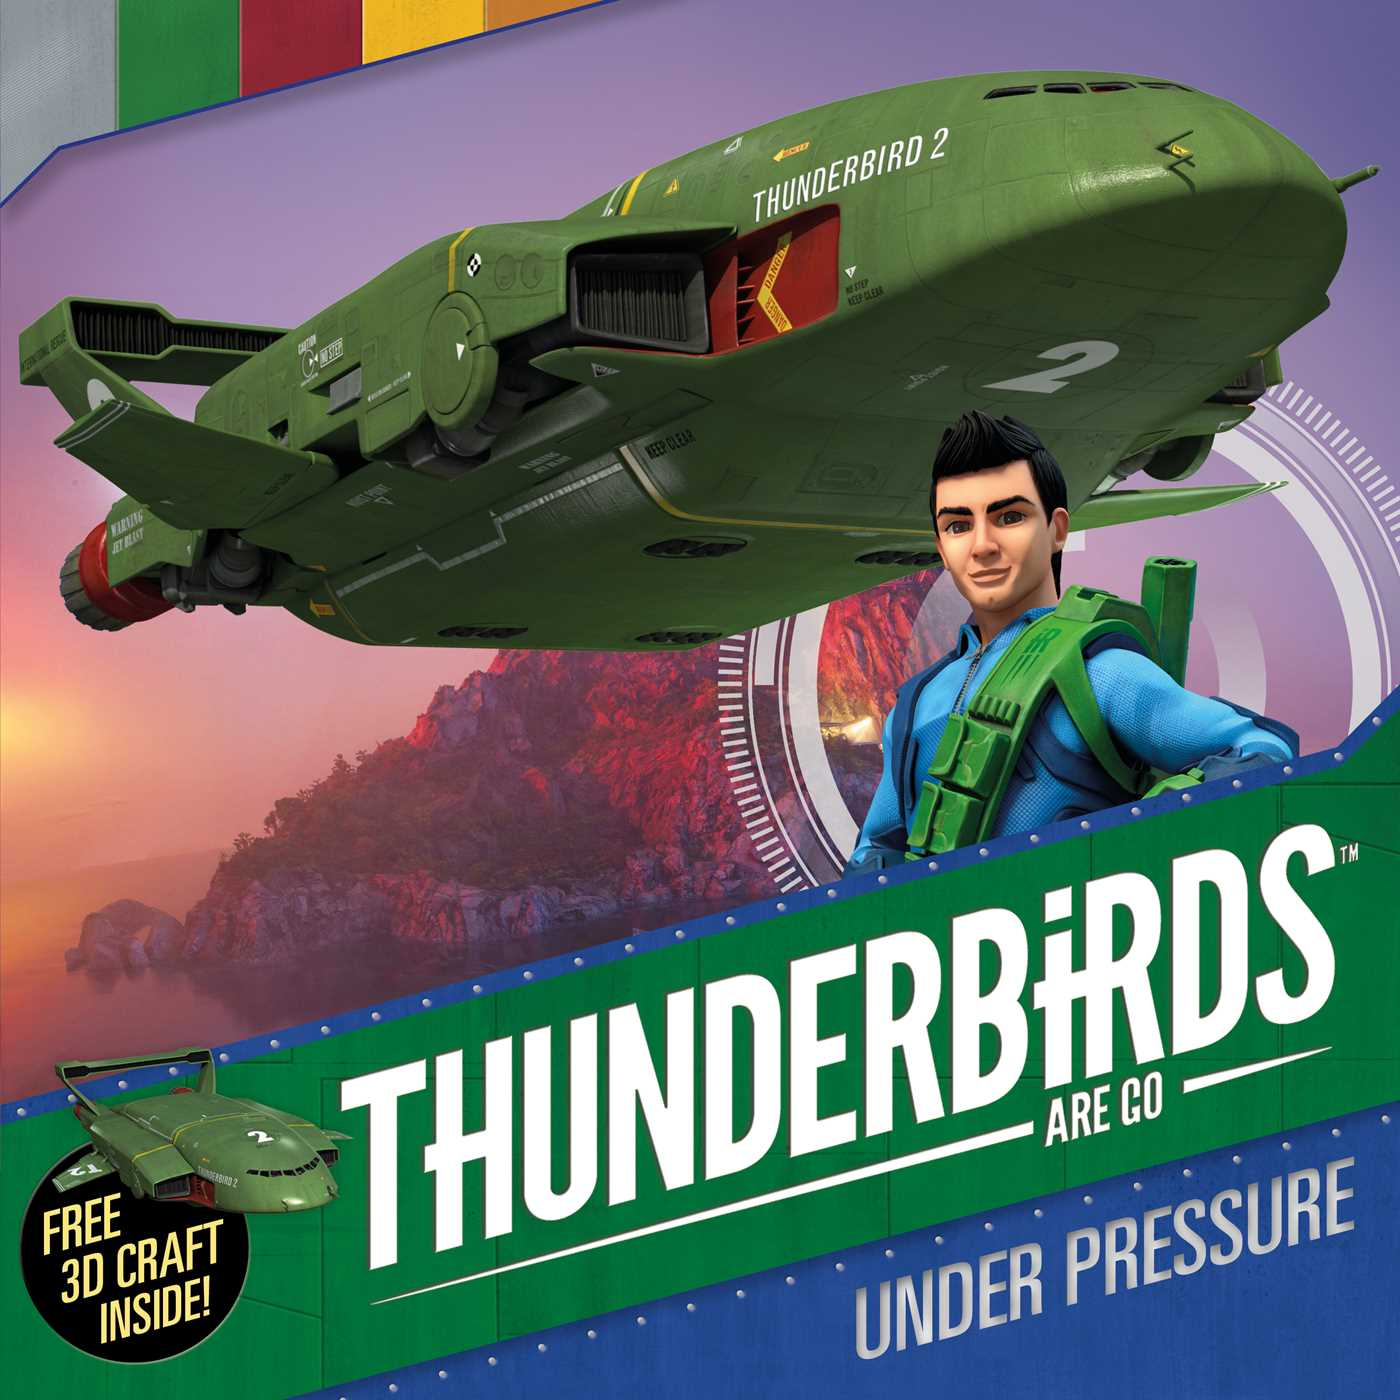 Thunderbirds are go under pressure 9781471145582 hr